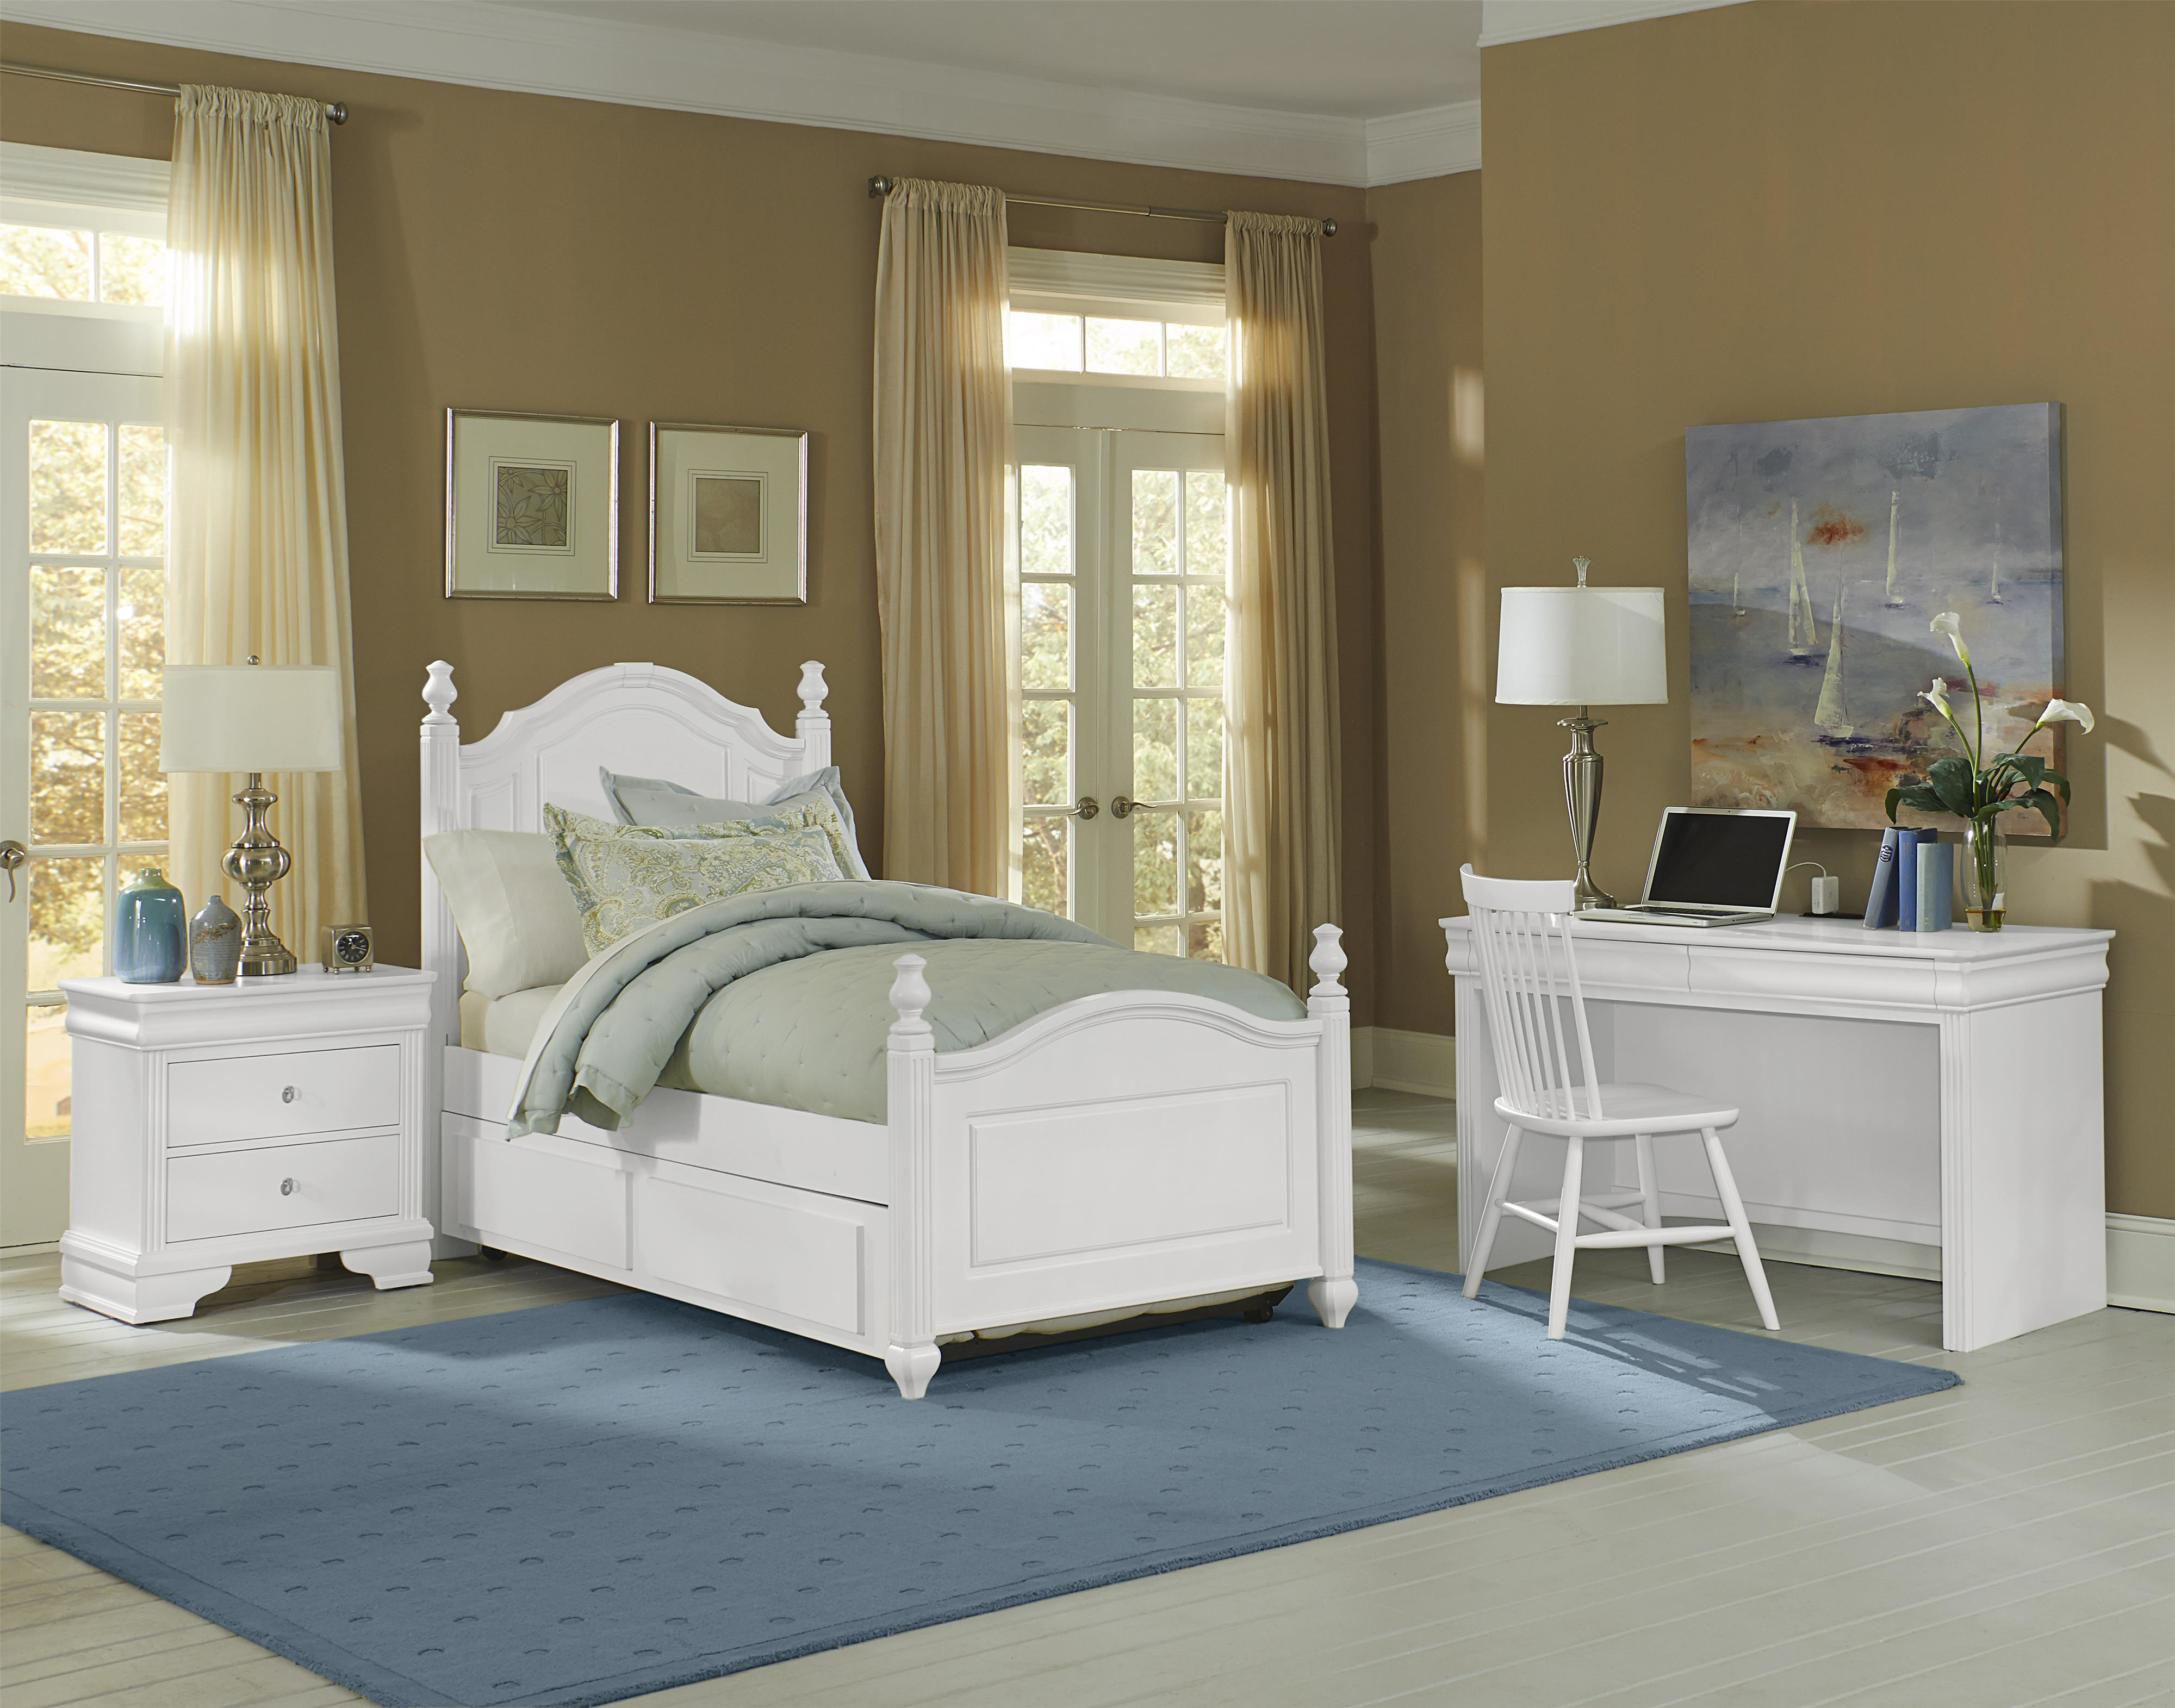 bassett number collections wayside item furniture cassell group q park bhf vaughan bedroom queen